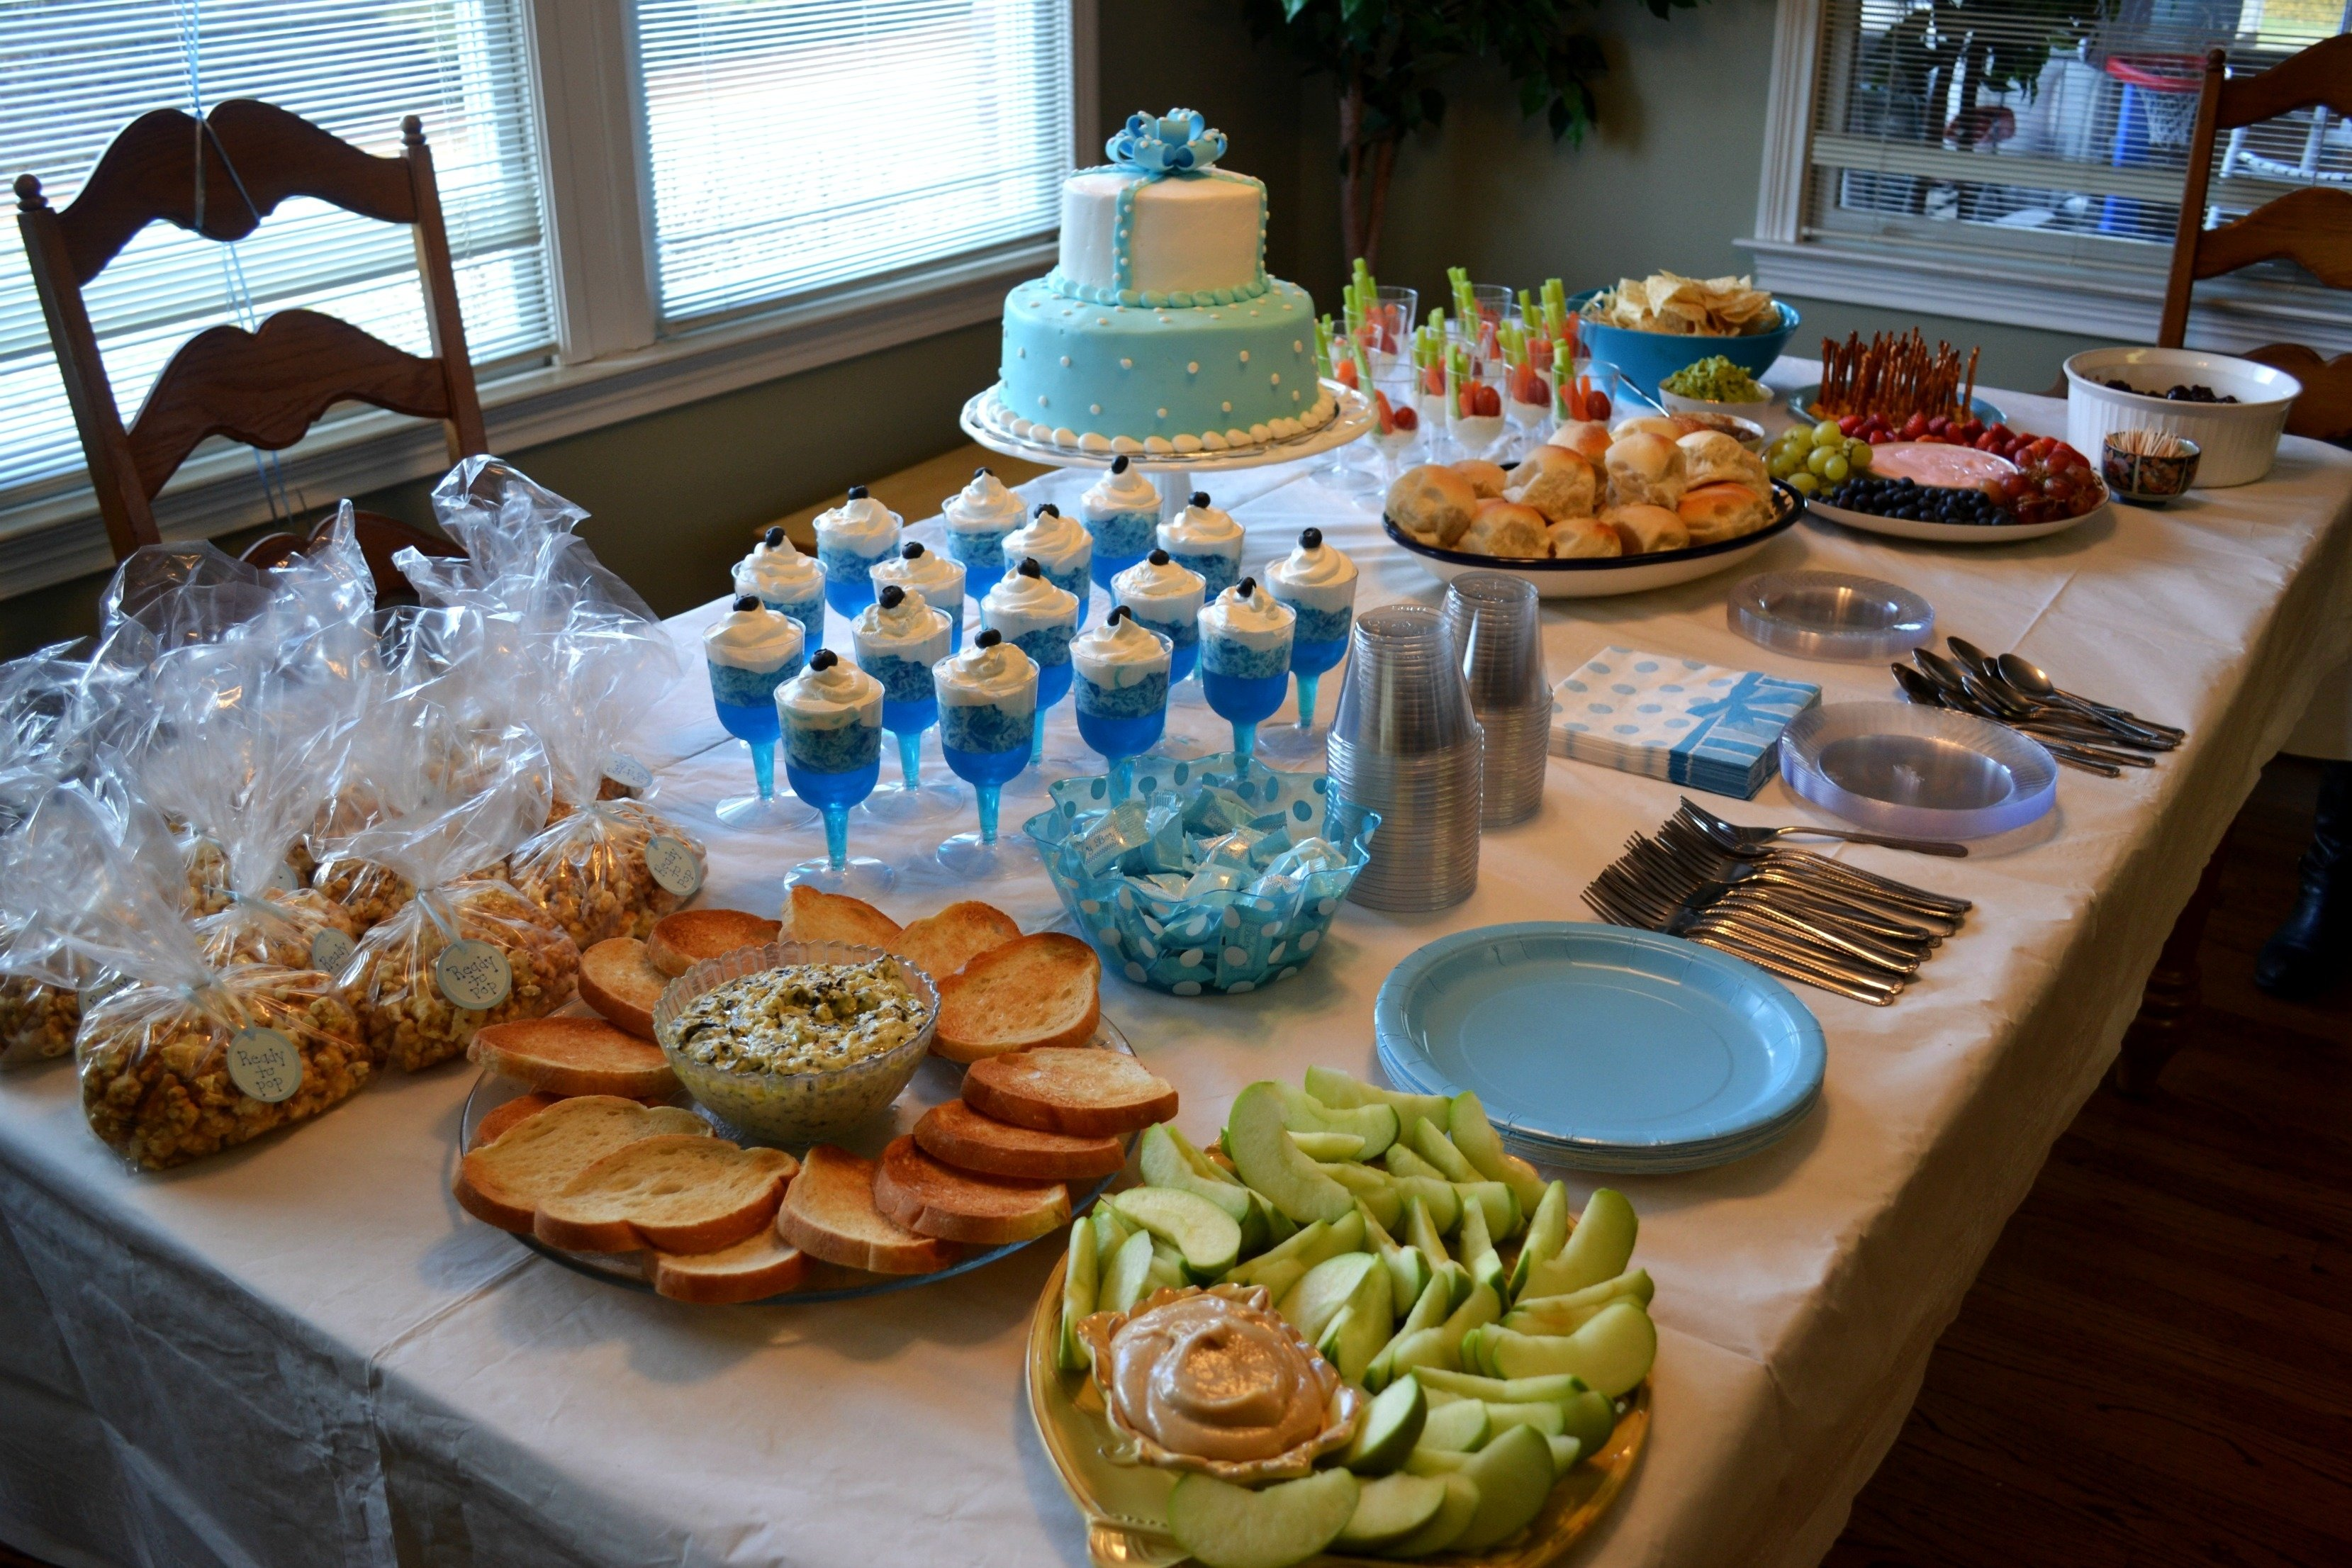 10 Perfect Baby Shower Food Ideas Pinterest astonishing baby shower food ideas for boy boys gallery wedding 2021